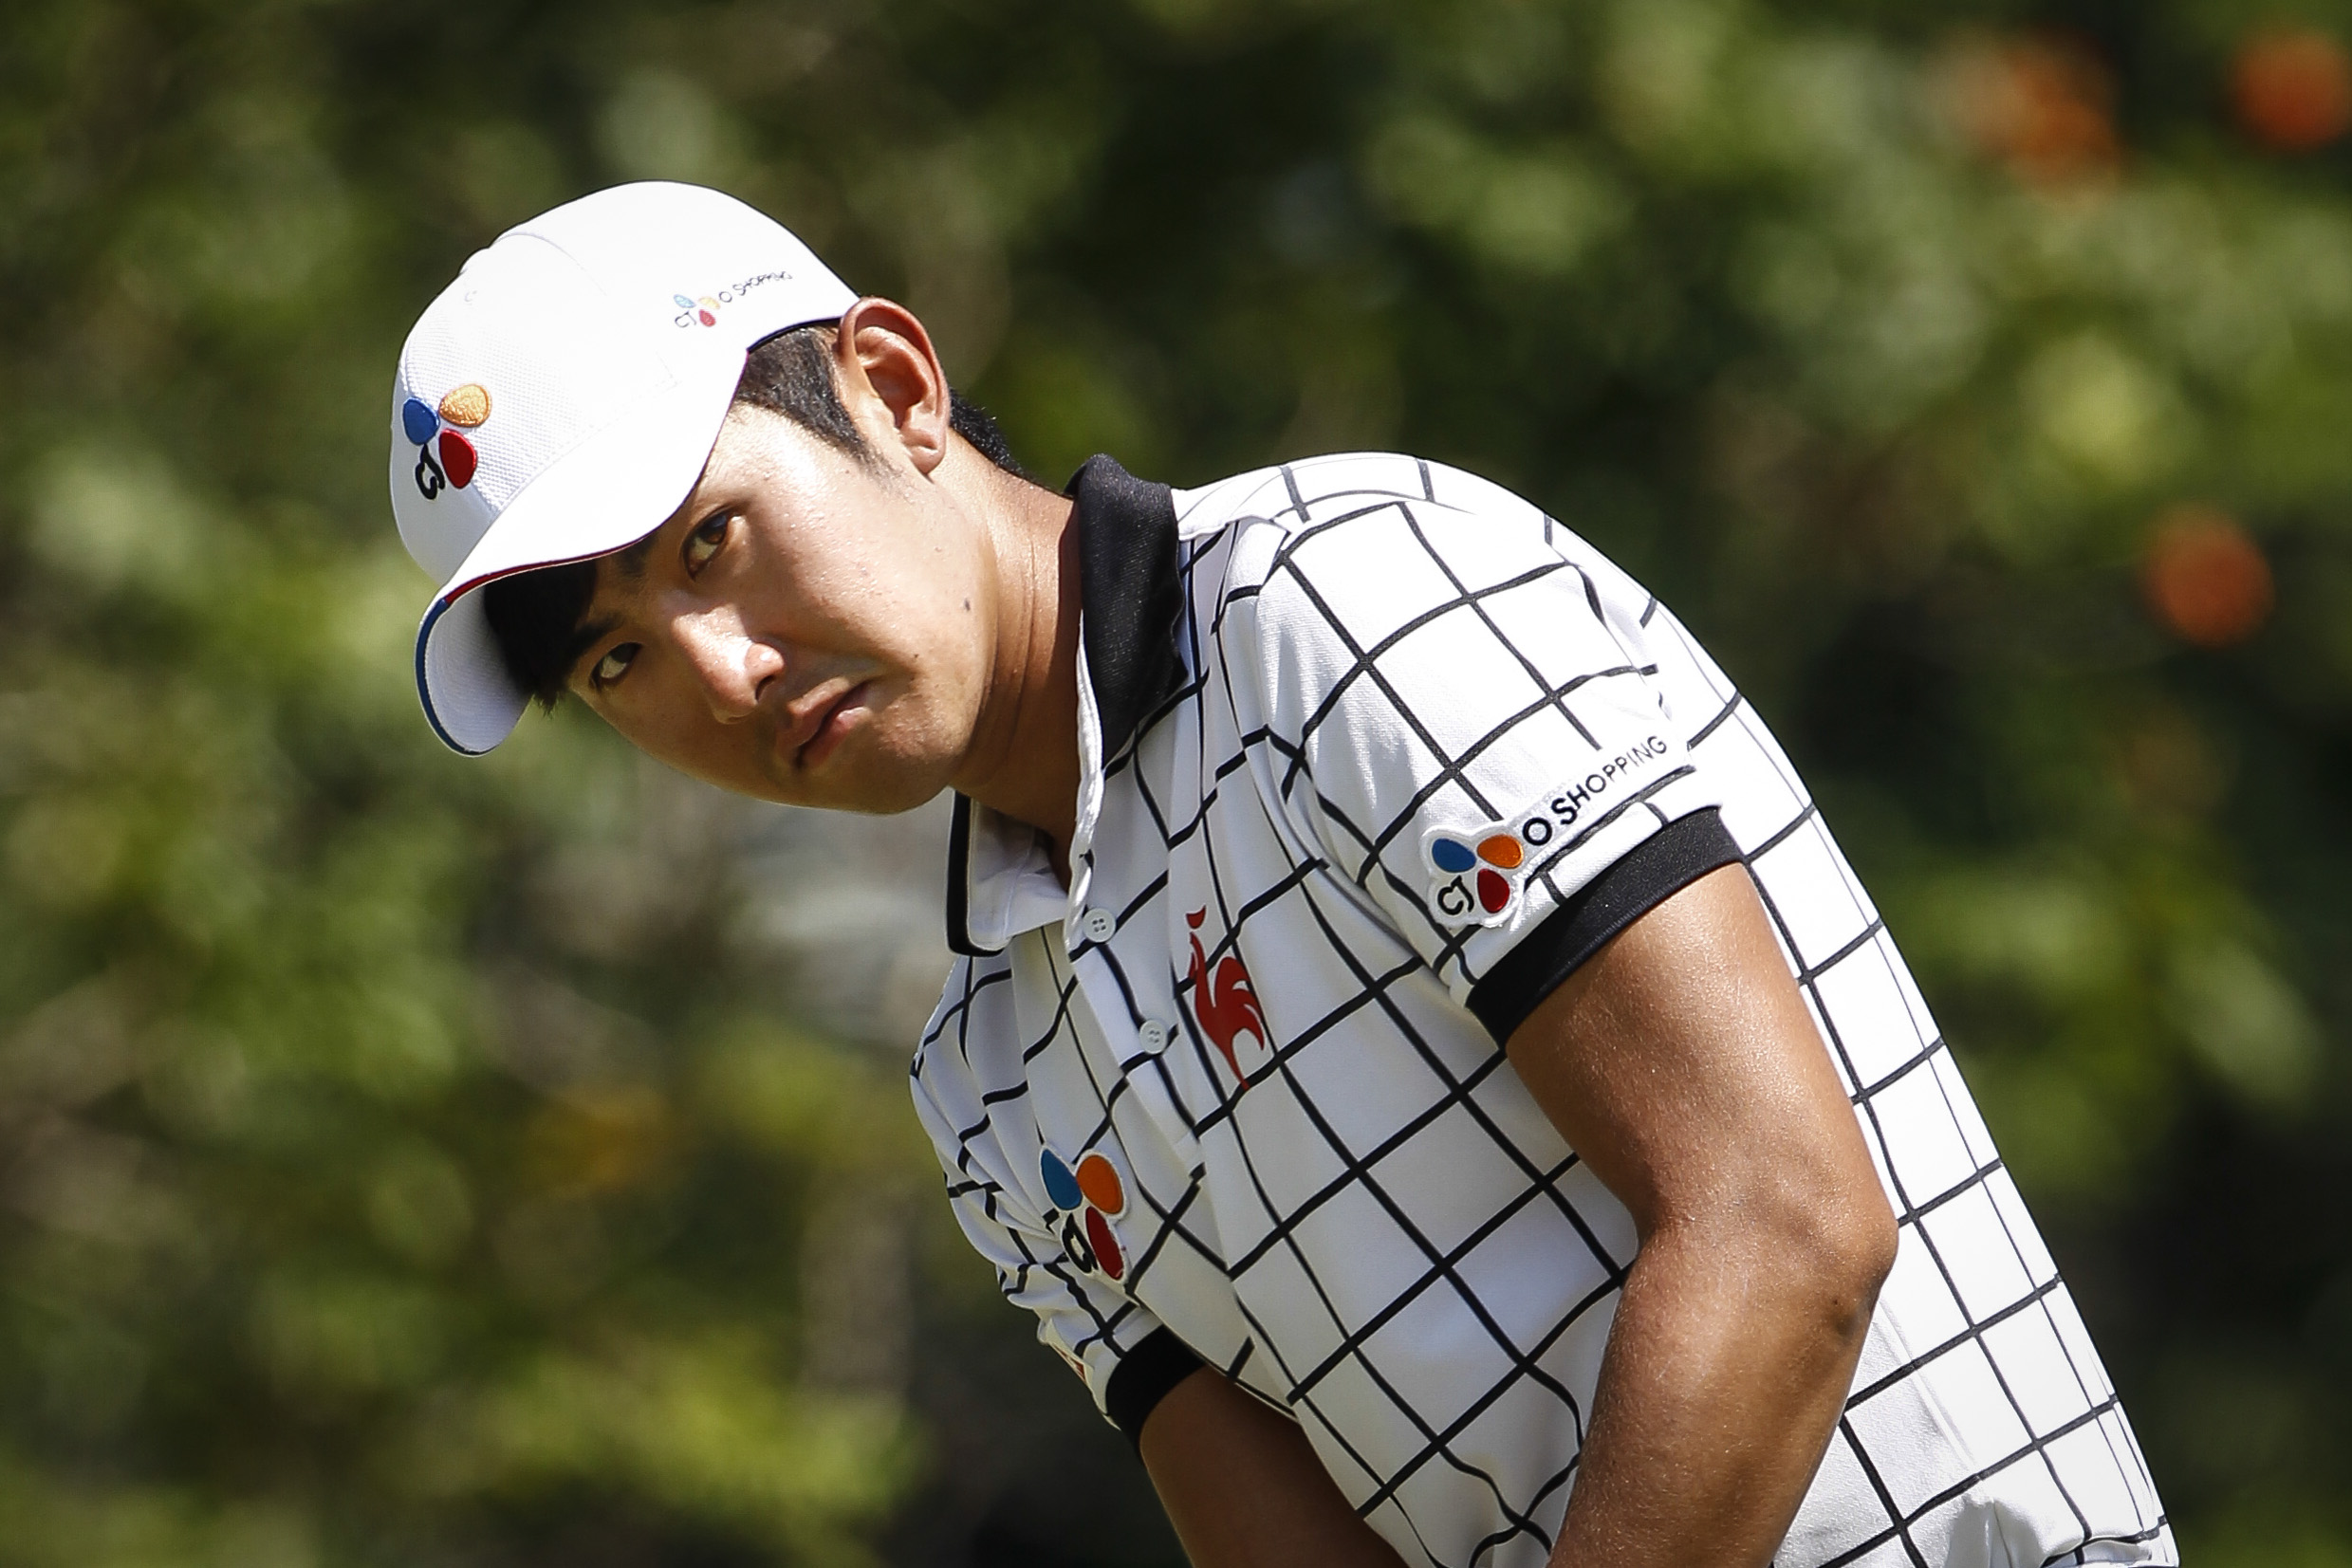 Lee Soo-min of South Korea watches his shot on the seventh green during the final round of the Maybank Championship golf tournament in Kuala Lumpur, Malaysia, on Sunday, Feb. 21, 2016. (AP Photo/Joshua Paul)